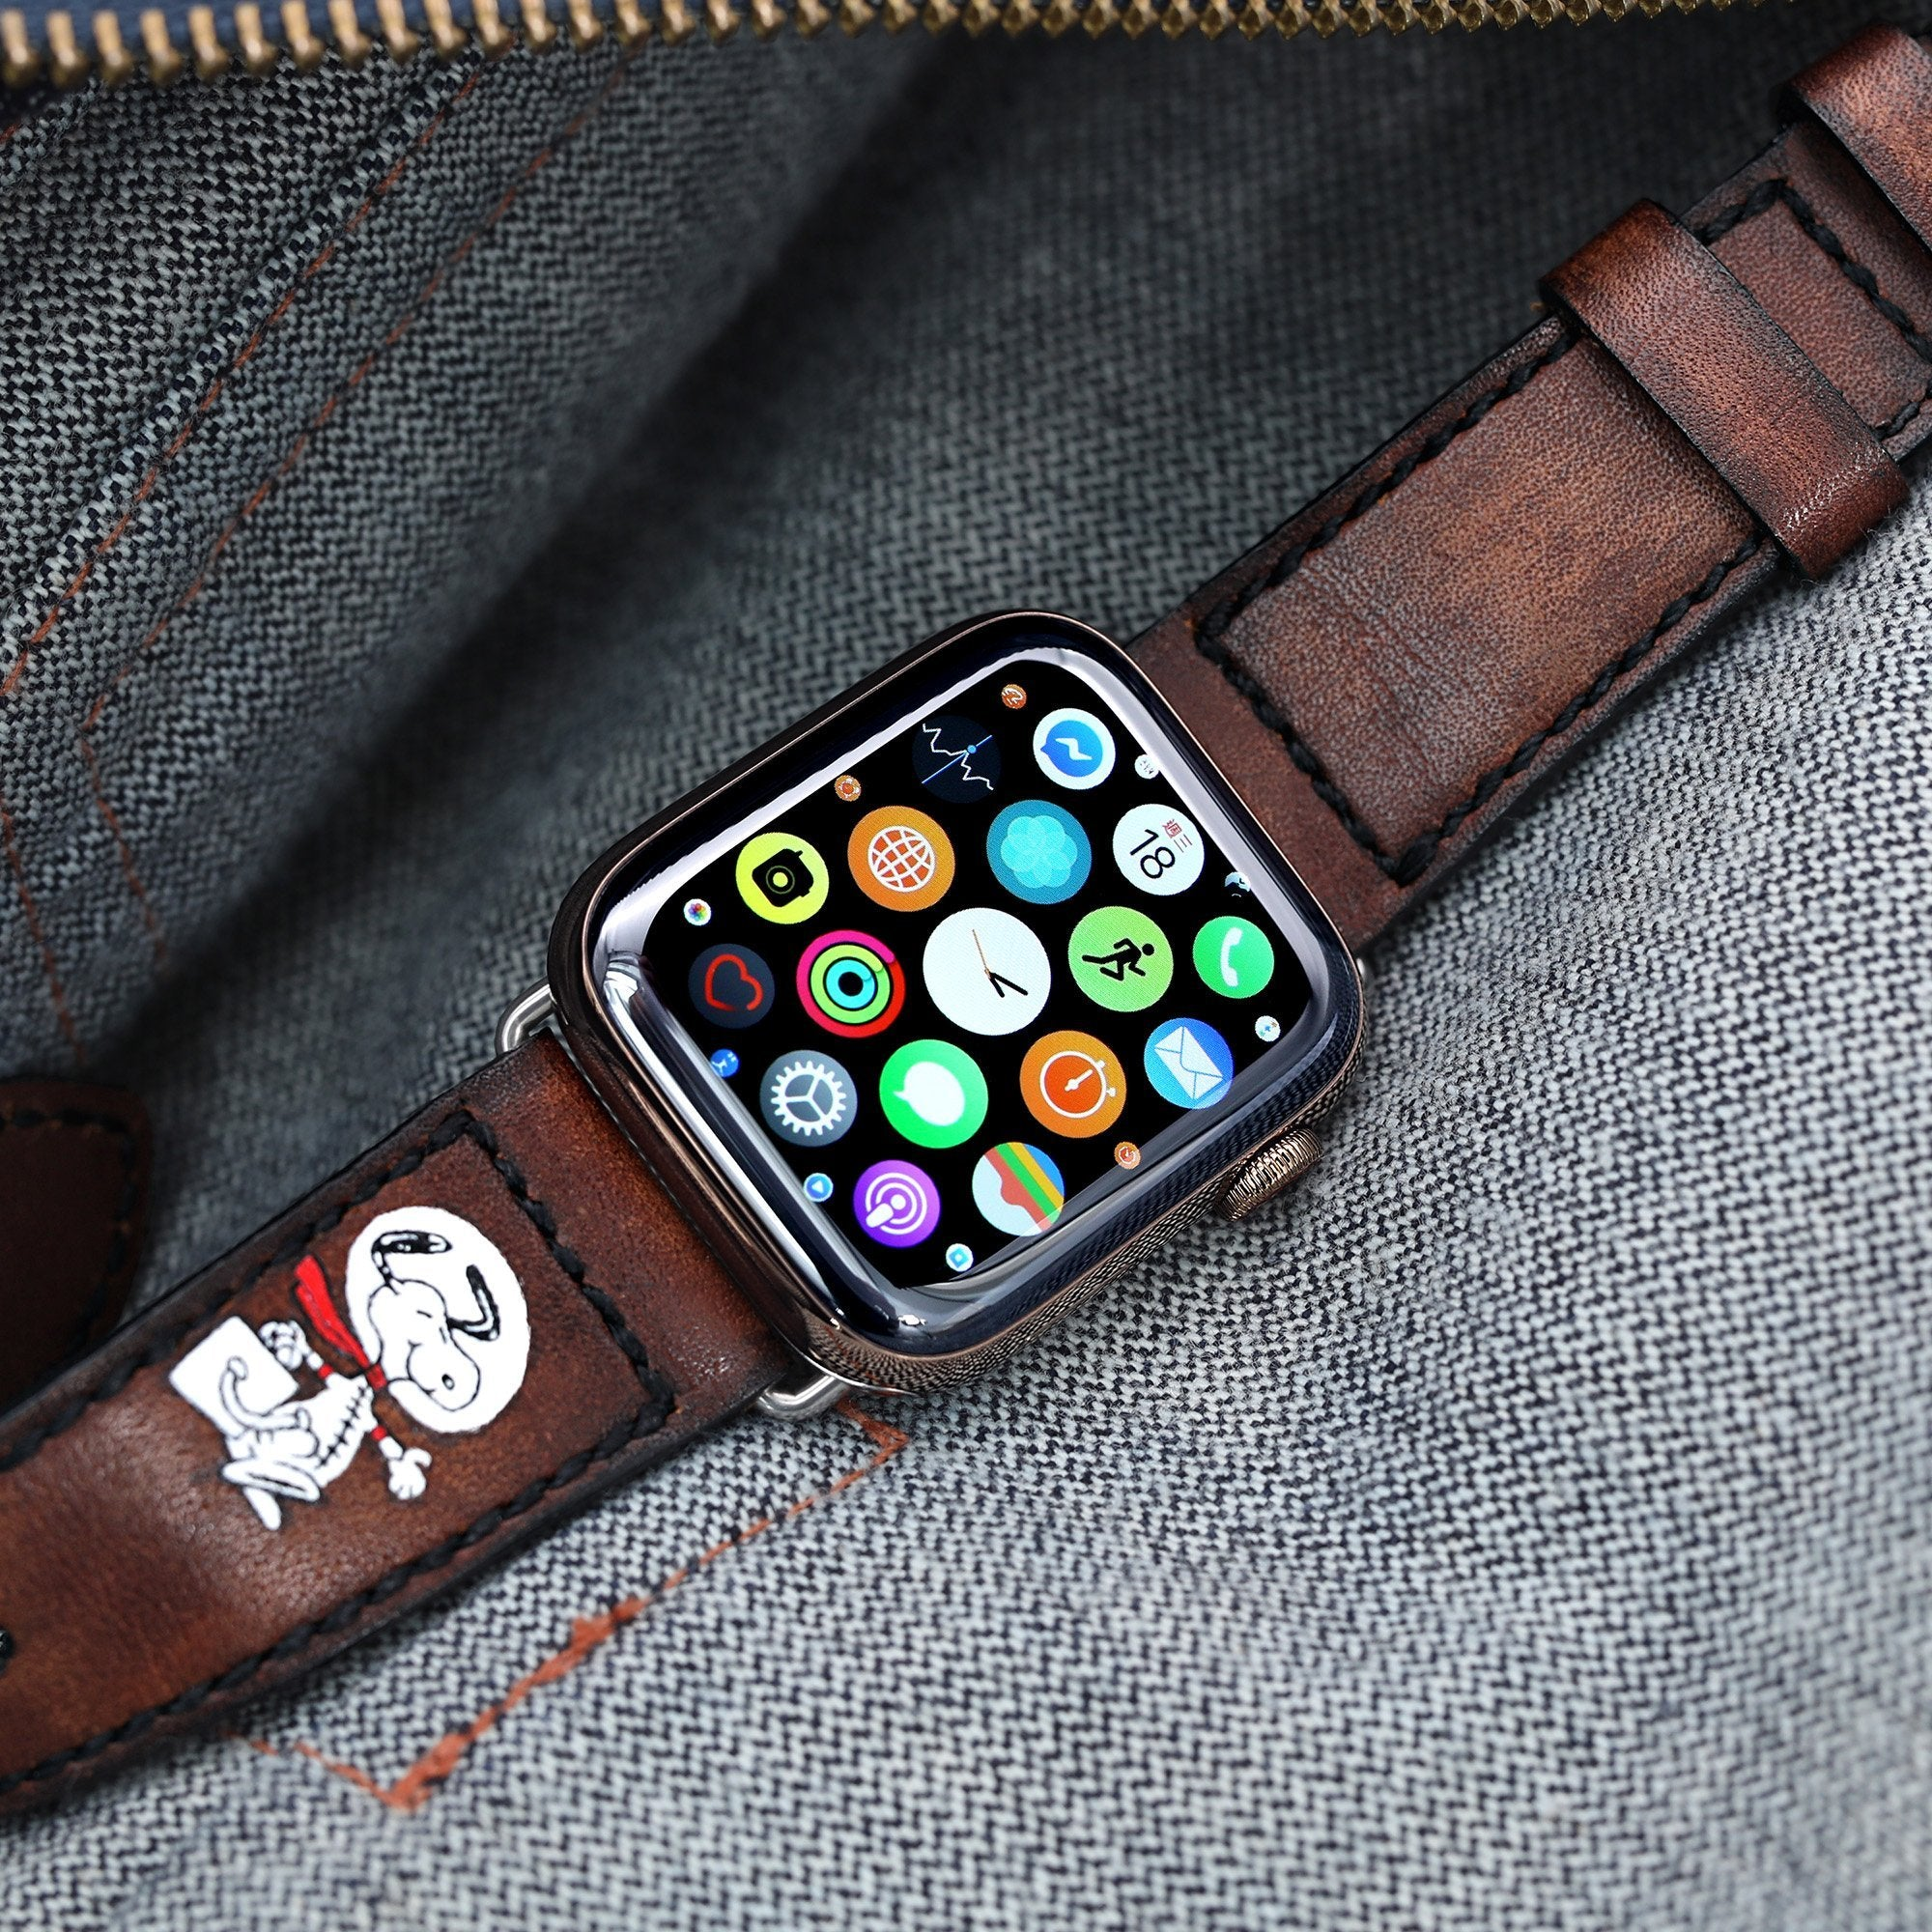 24mm Dark Brown Handmade Apple watch Quick Release Leather Watch Strap Minimalist Snoopy Strapcode Watch Bands